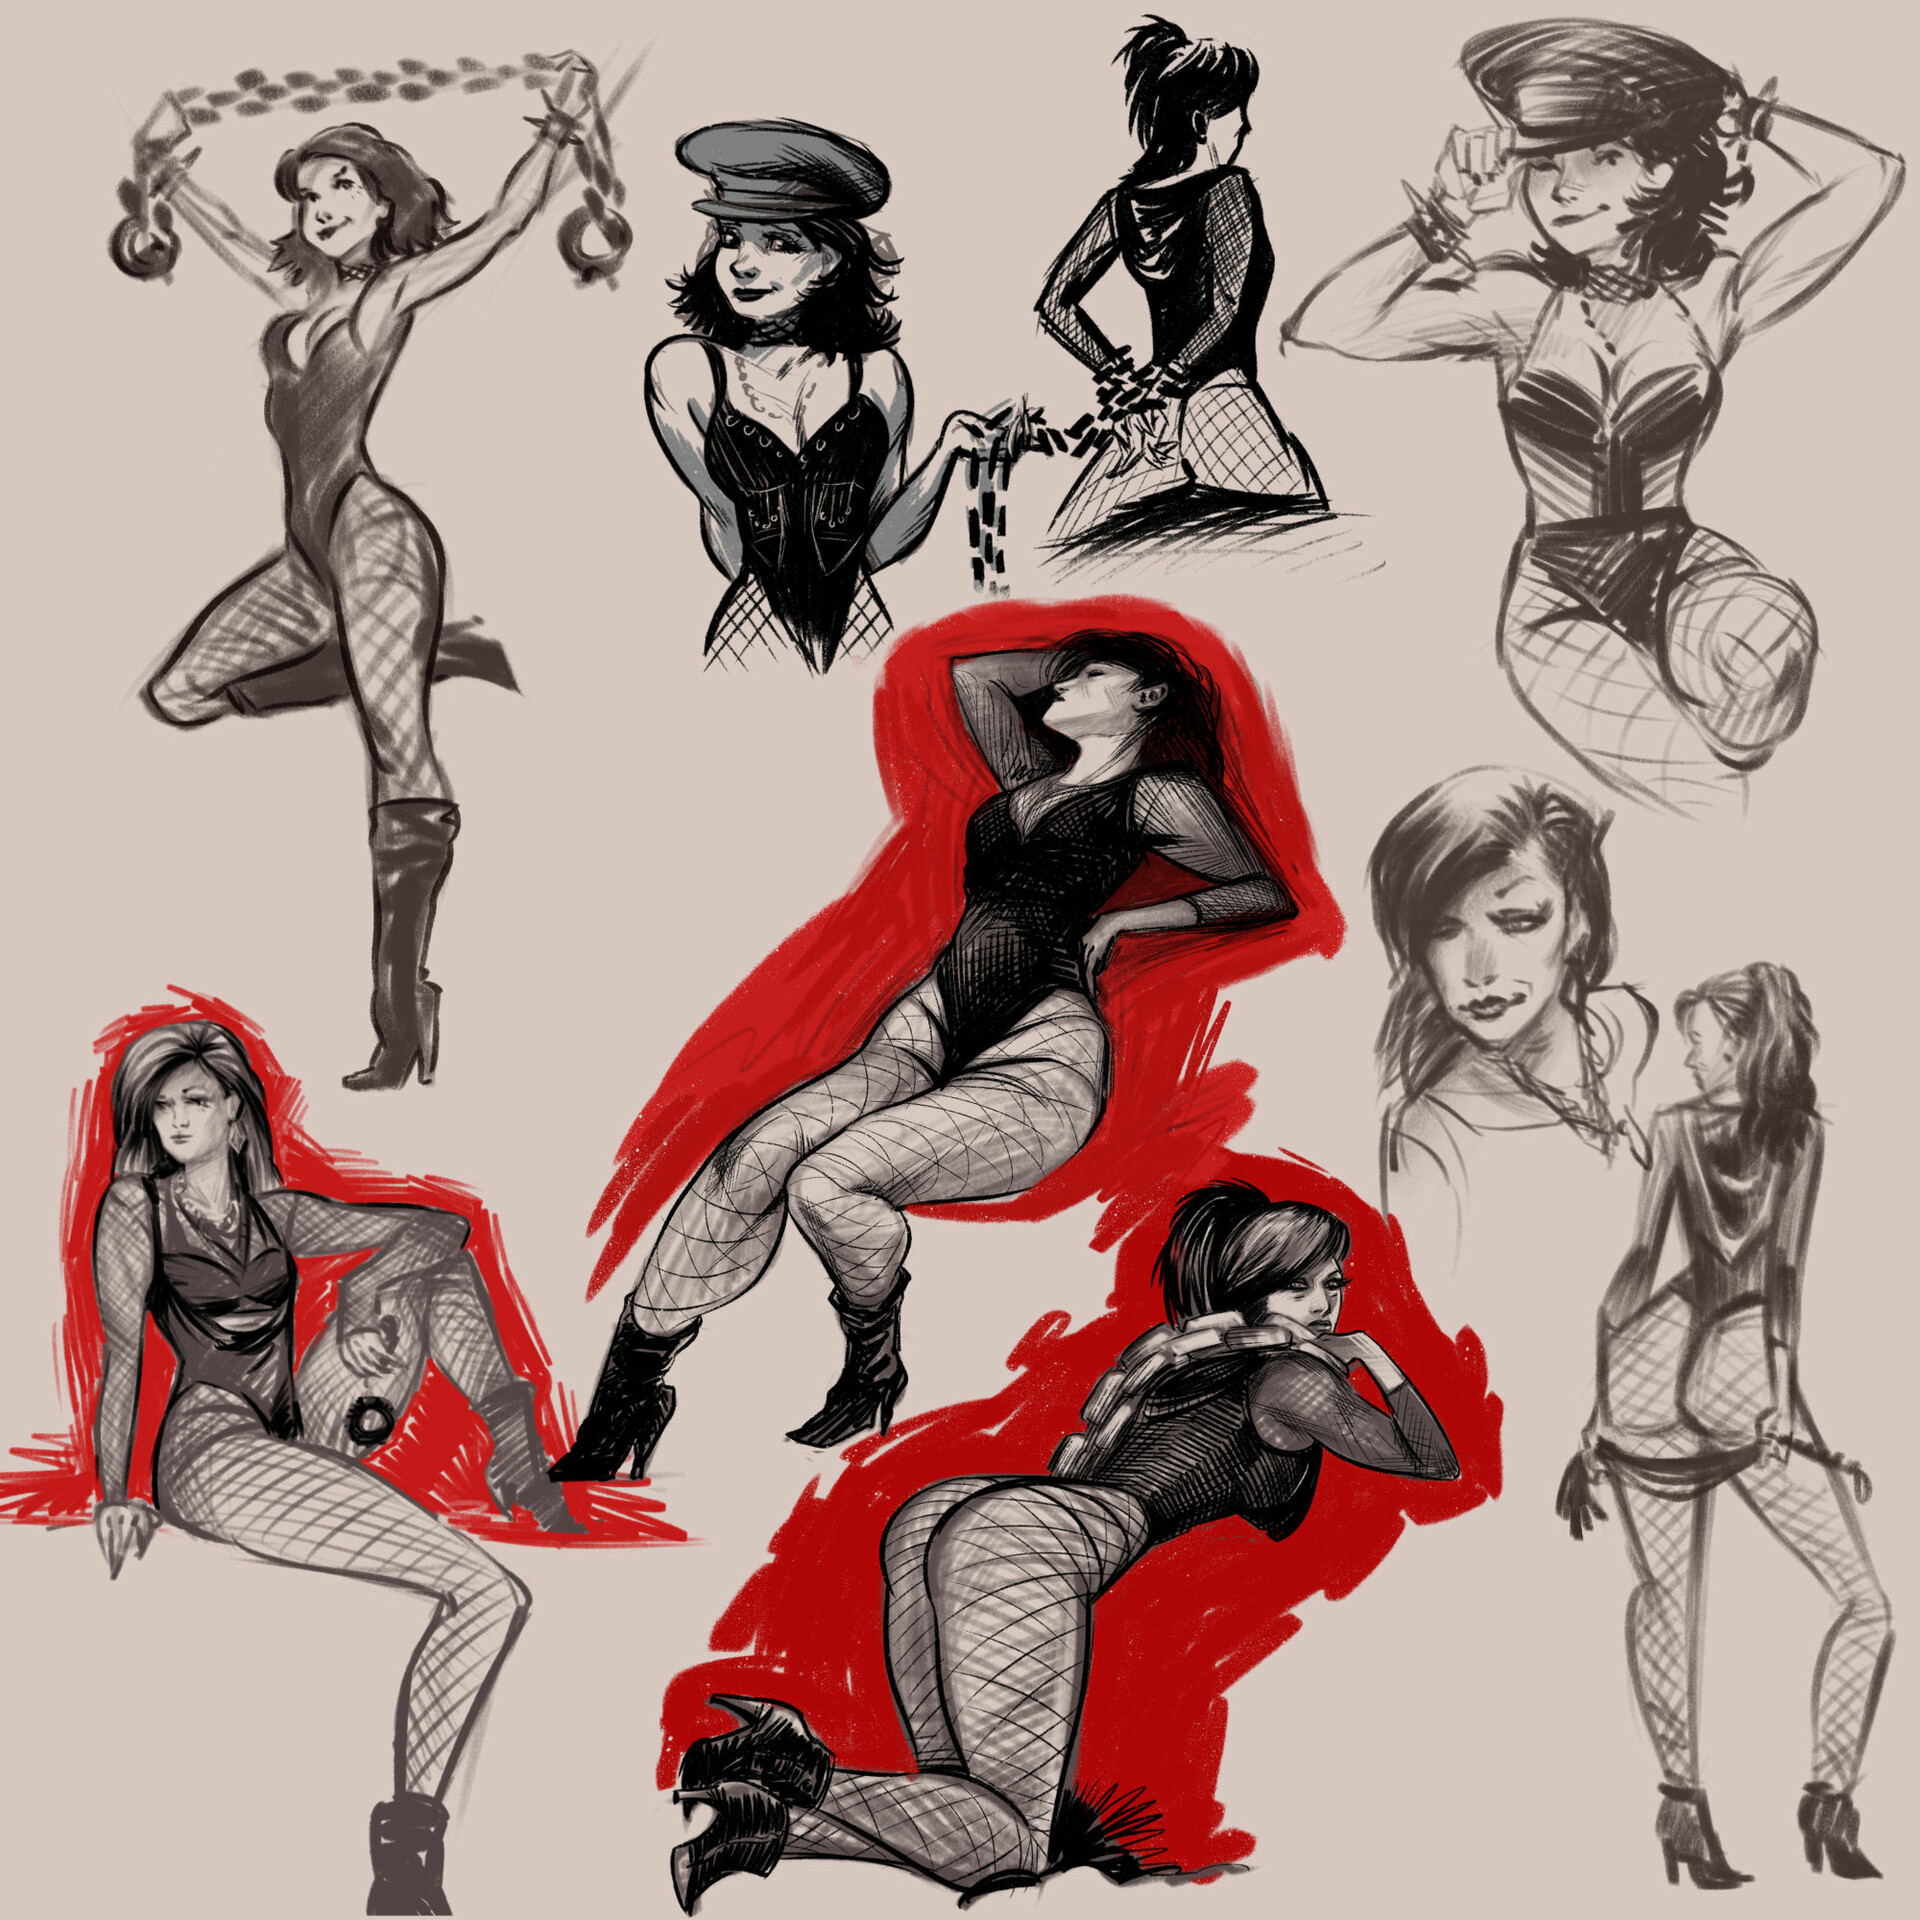 Anthony diecidue pin up sketches